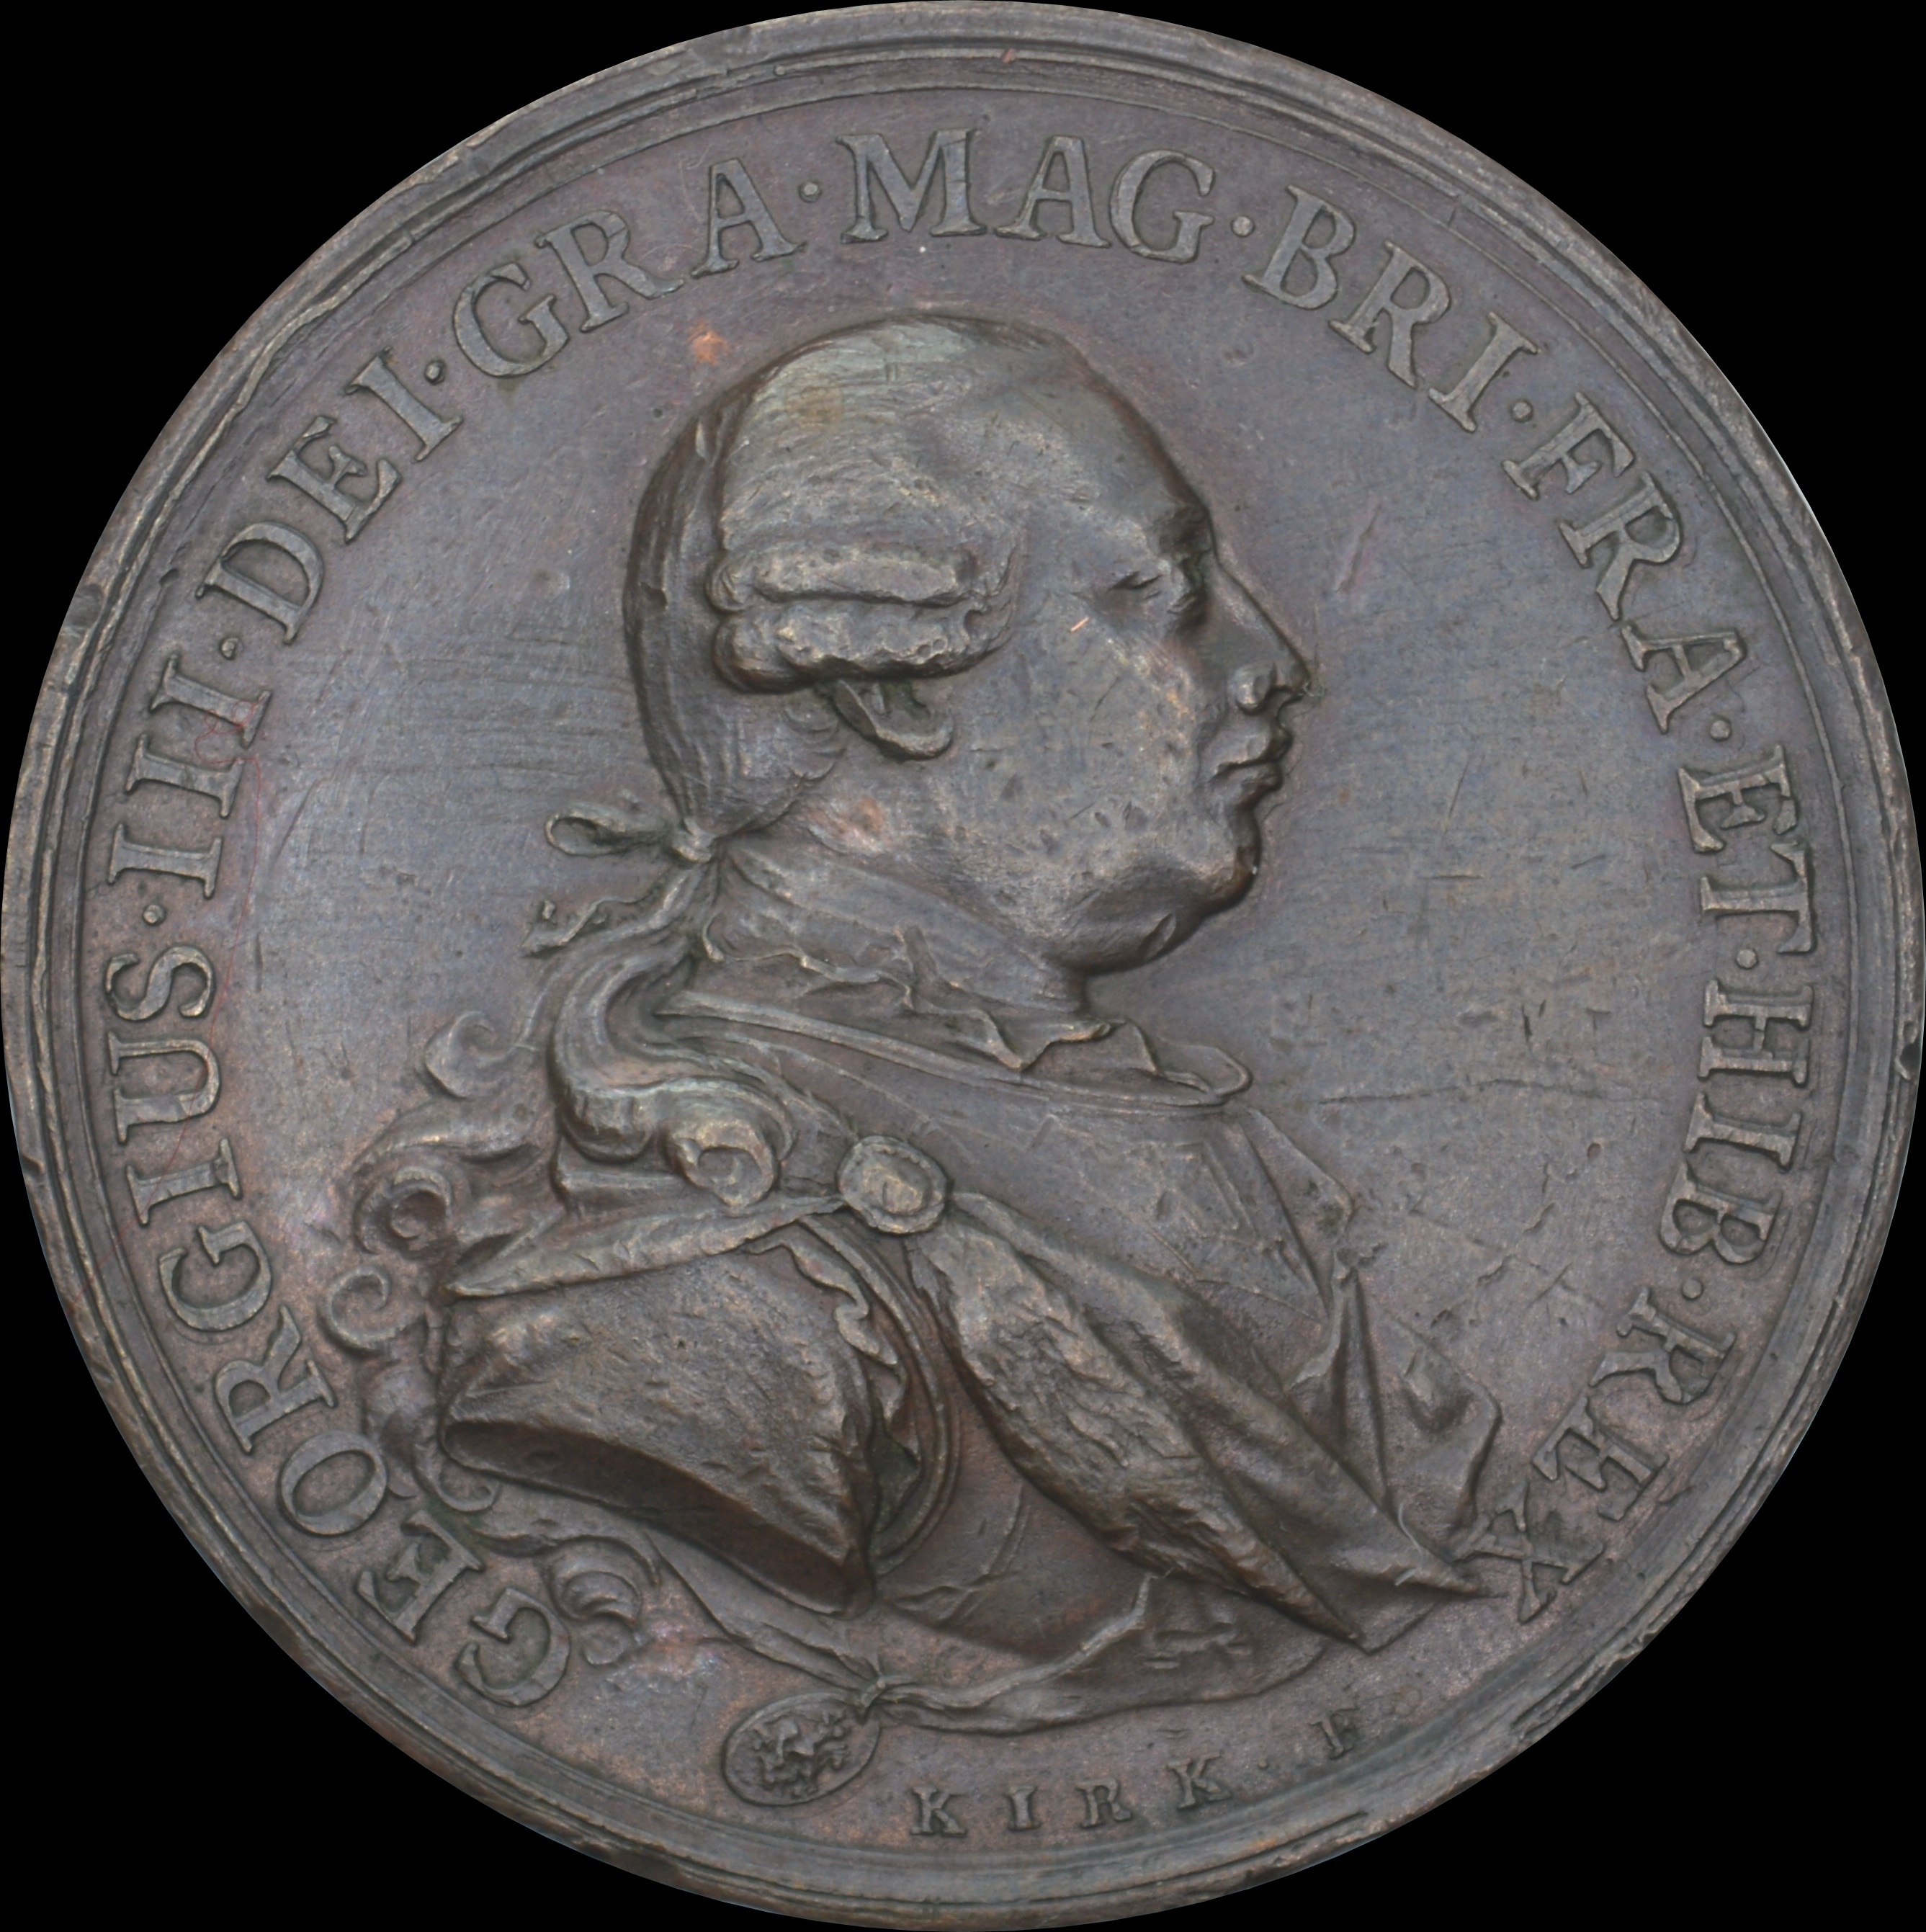 George III - 1775 Gold Recoinage Bronze Medal by Kirk